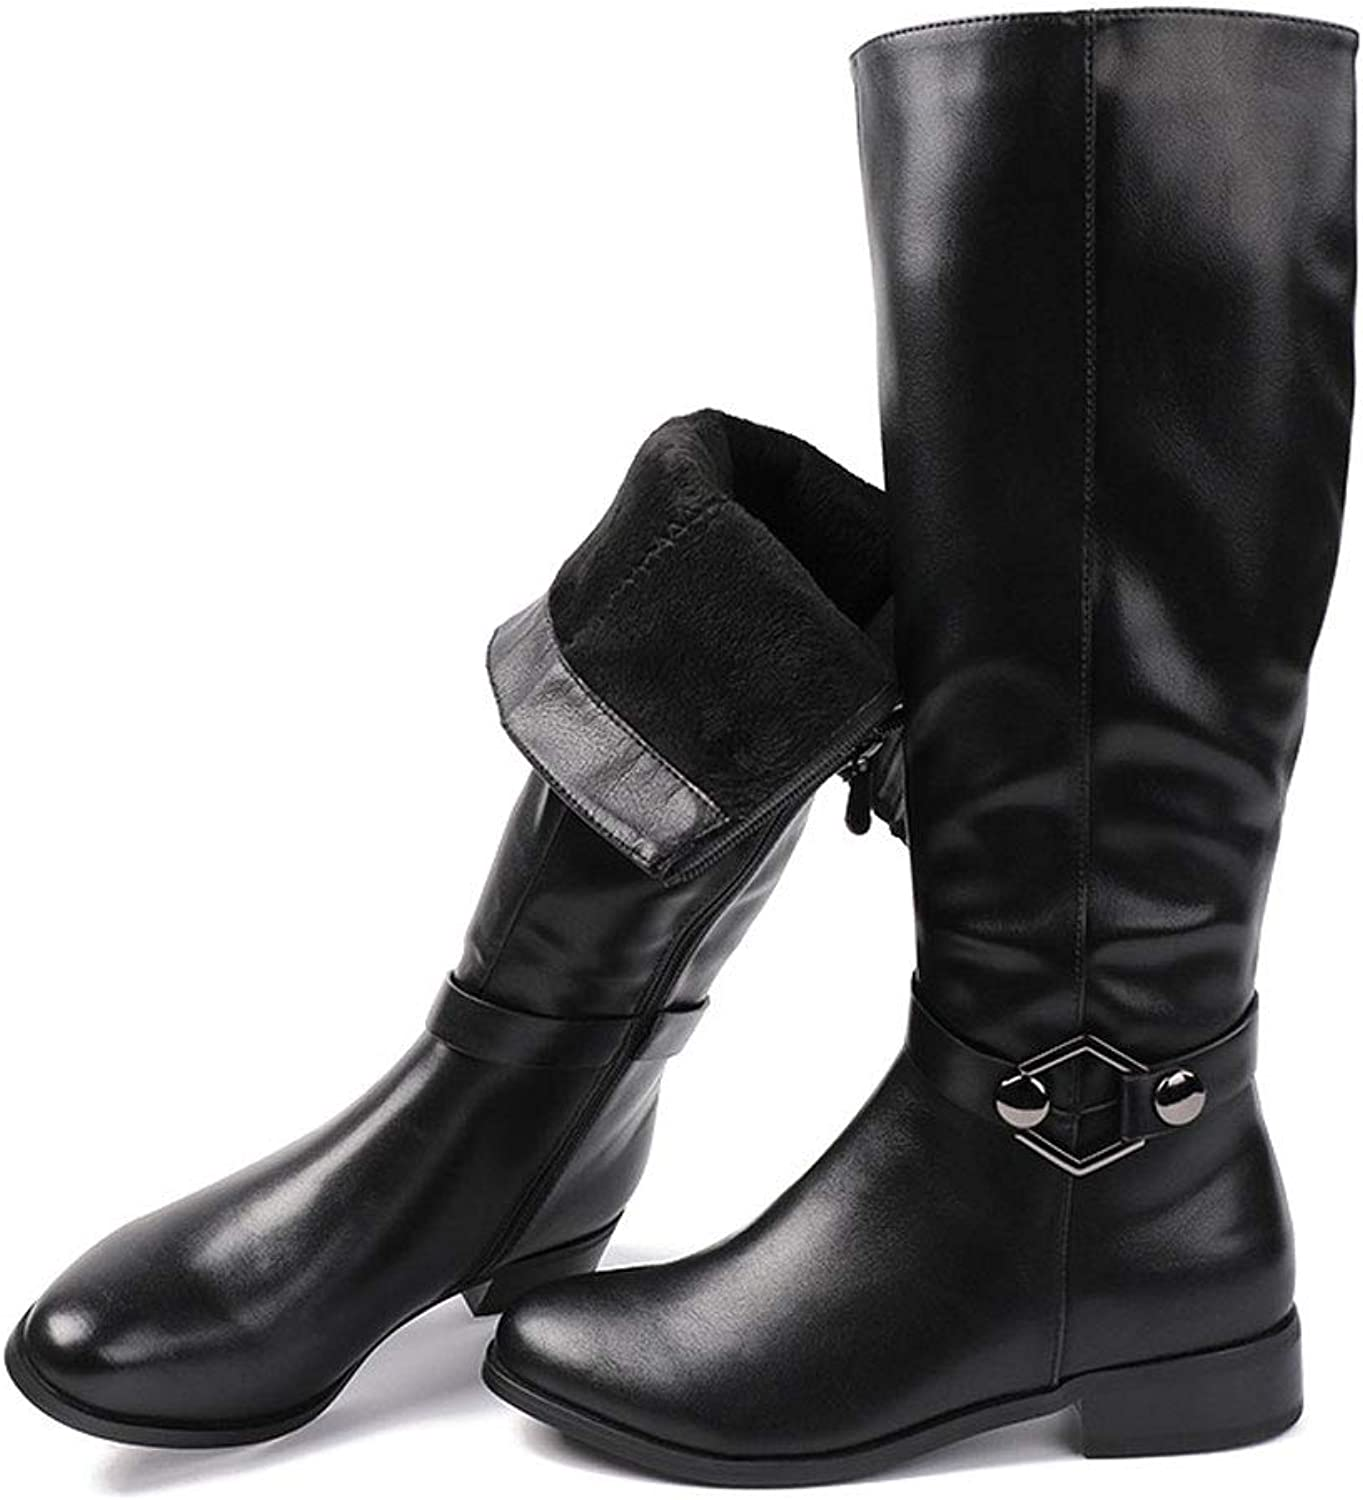 Women's Boots, Knight Boots Zipper Comfort Round Head Belt Buckle High Tube Artificial Leather Warm Thick Low Heel Thick Heel Black